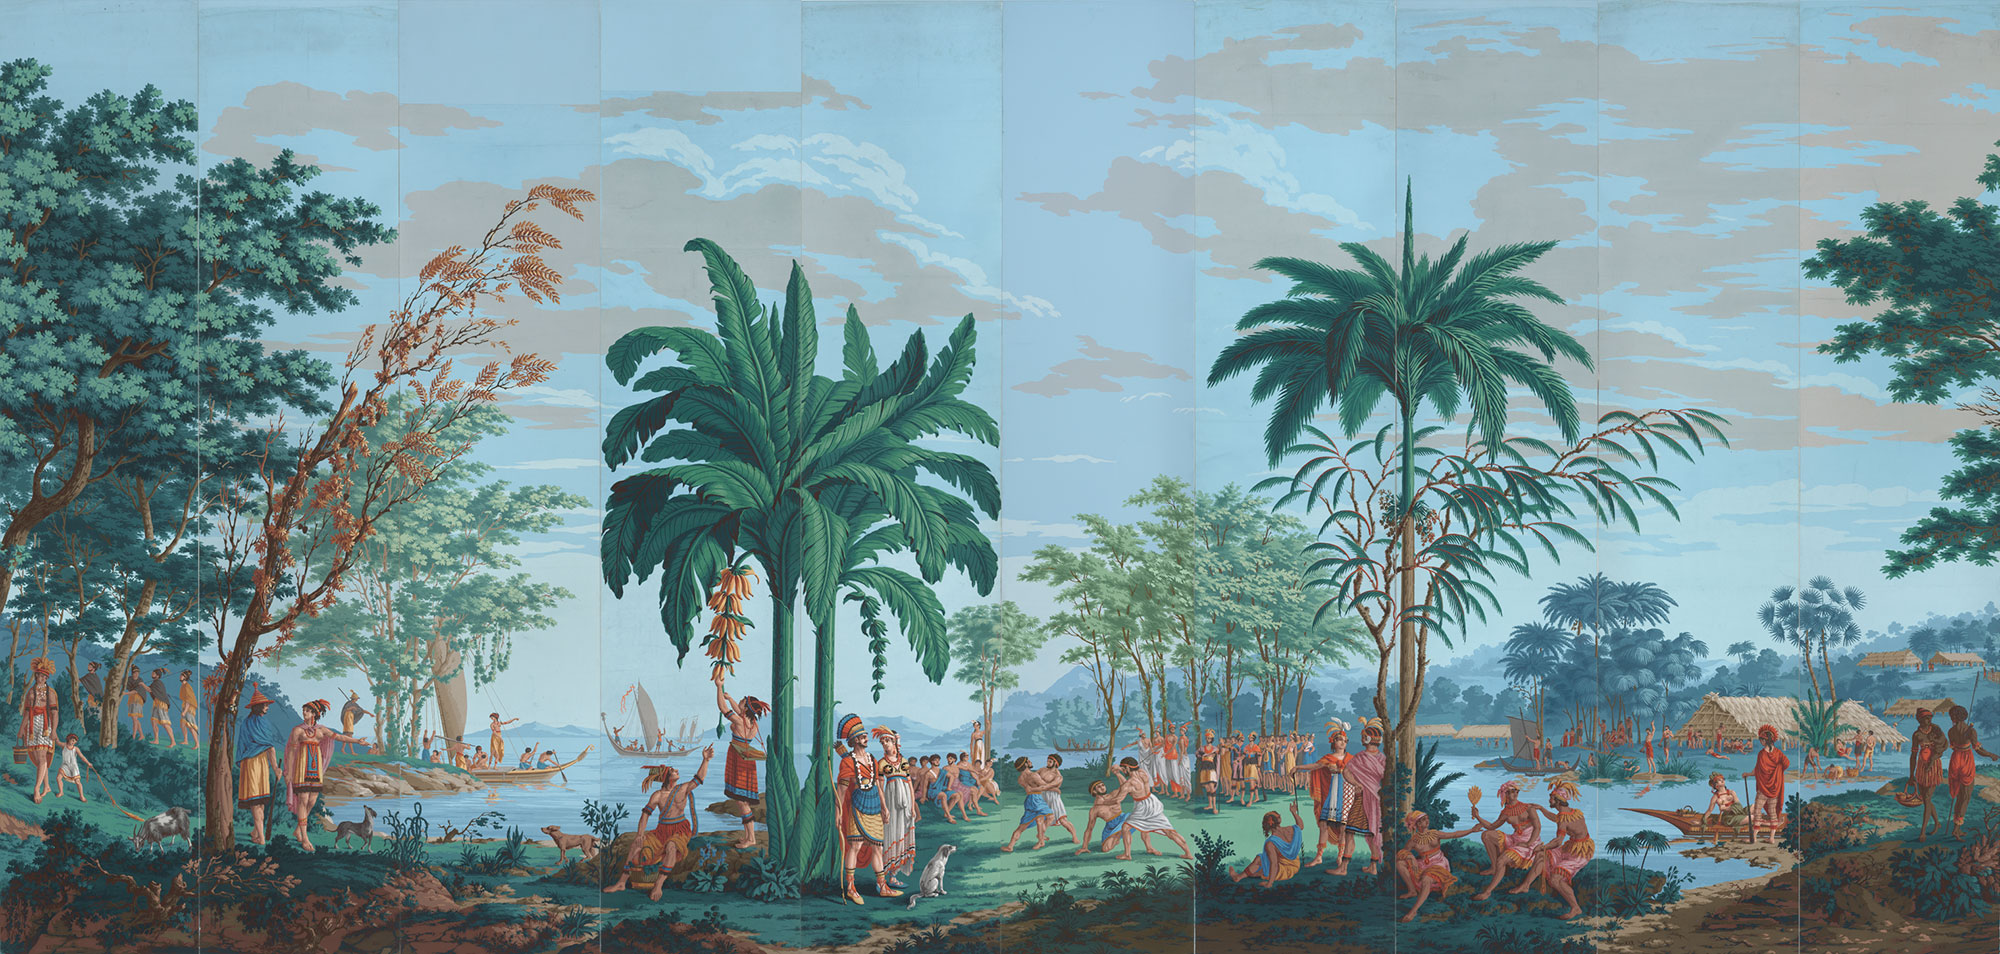 """""""Les Sauvages de la Mer Pacifique (Native Peoples of the Pacific Ocean)"""" is believed to be one of the first panoramic wallpapers ever created—it inspired artist Lisa Reihana."""